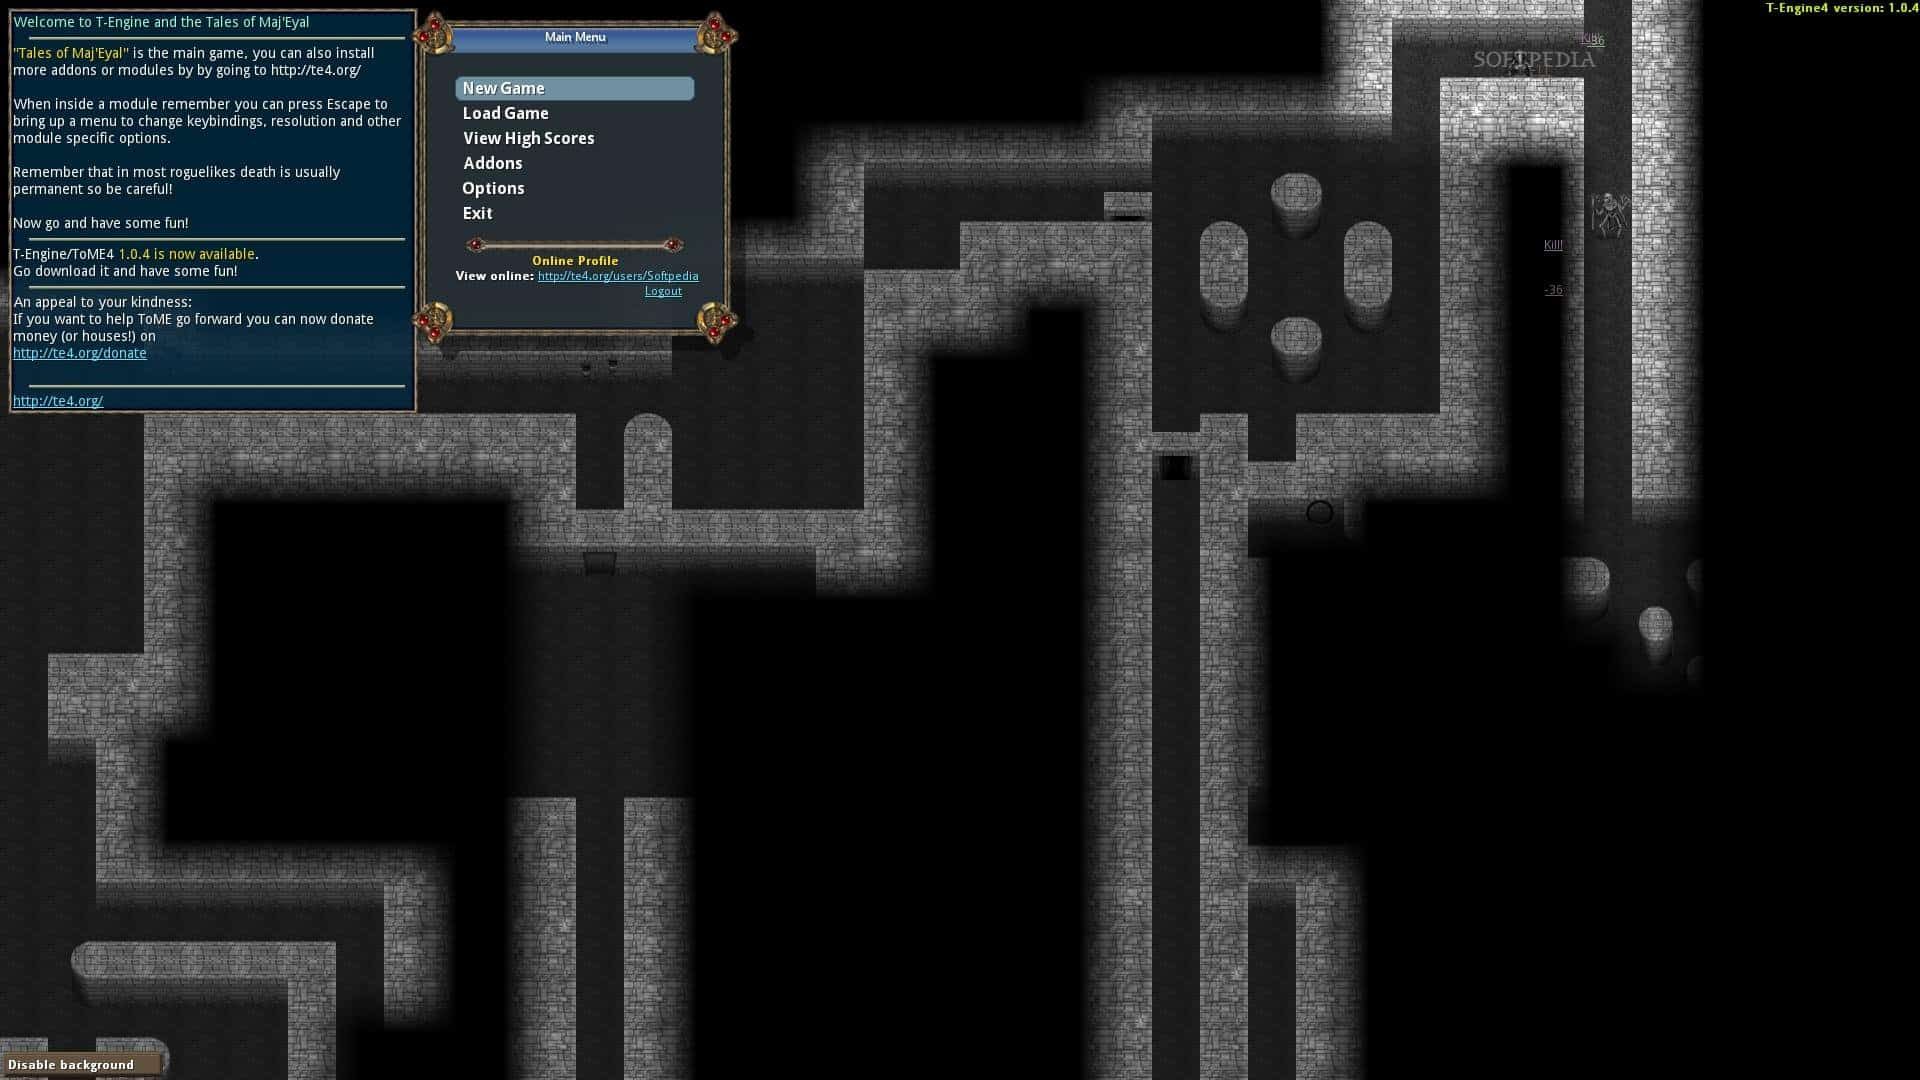 Tales Of Maj'Eyal - an open source roguelike RPG video game